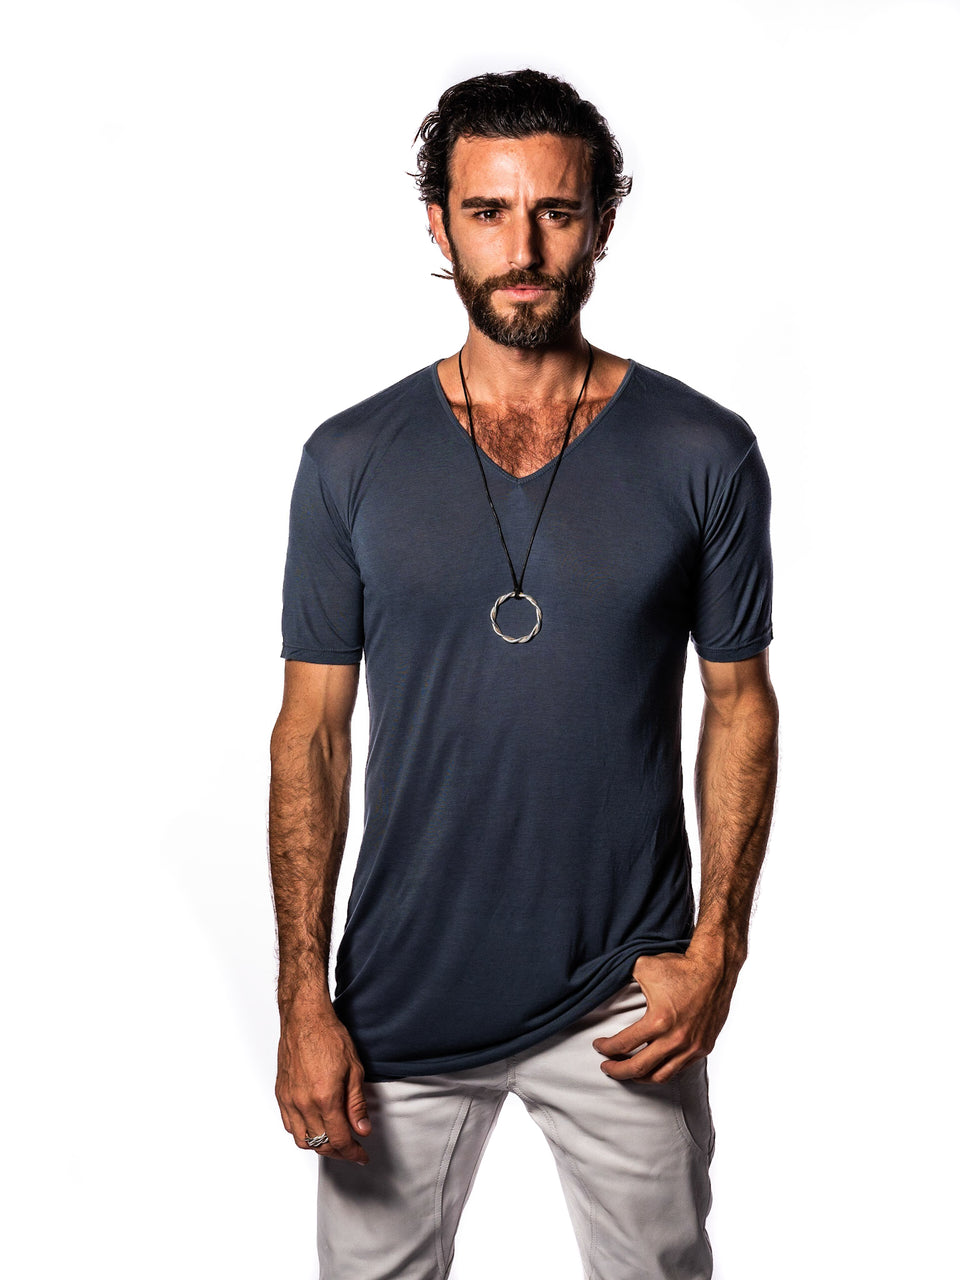 Short Sleeve V-Neck T-Shirt - Steele Blue